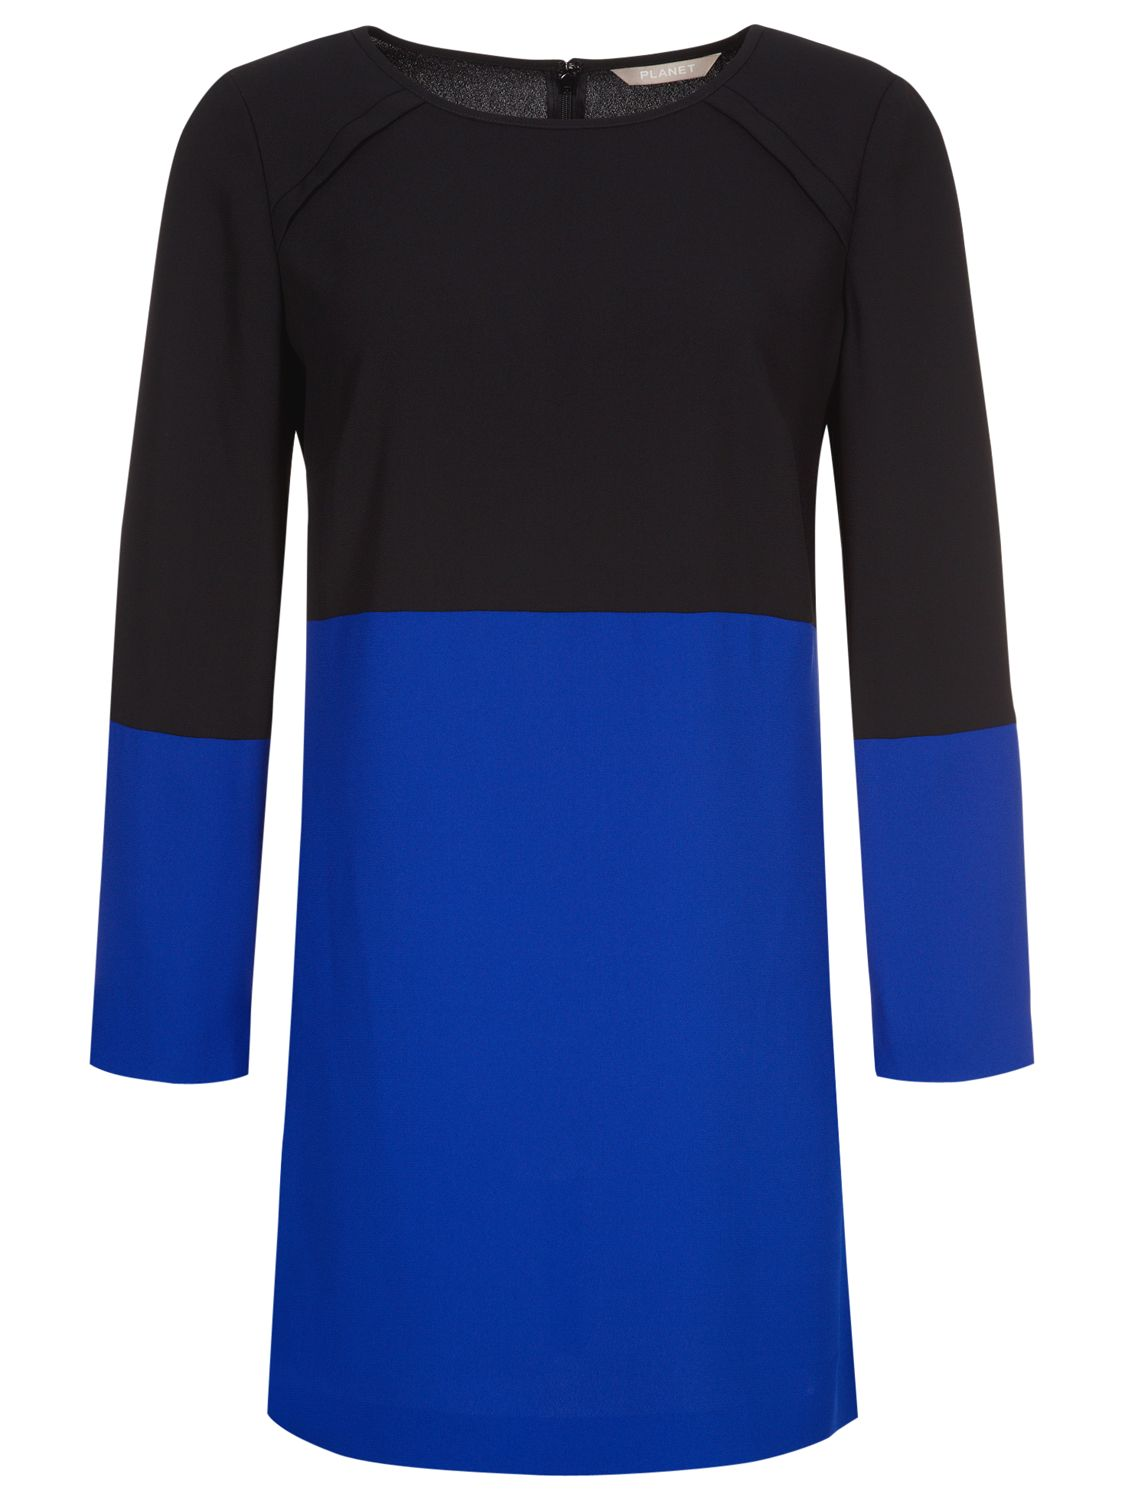 planet colour block tunic dress black/blue, planet, colour, block, tunic, dress, black/blue, 12|14, clearance, womenswear offers, womens dresses offers, women, plus size, inactive womenswear, new reductions, womens dresses, special offers, 1601126